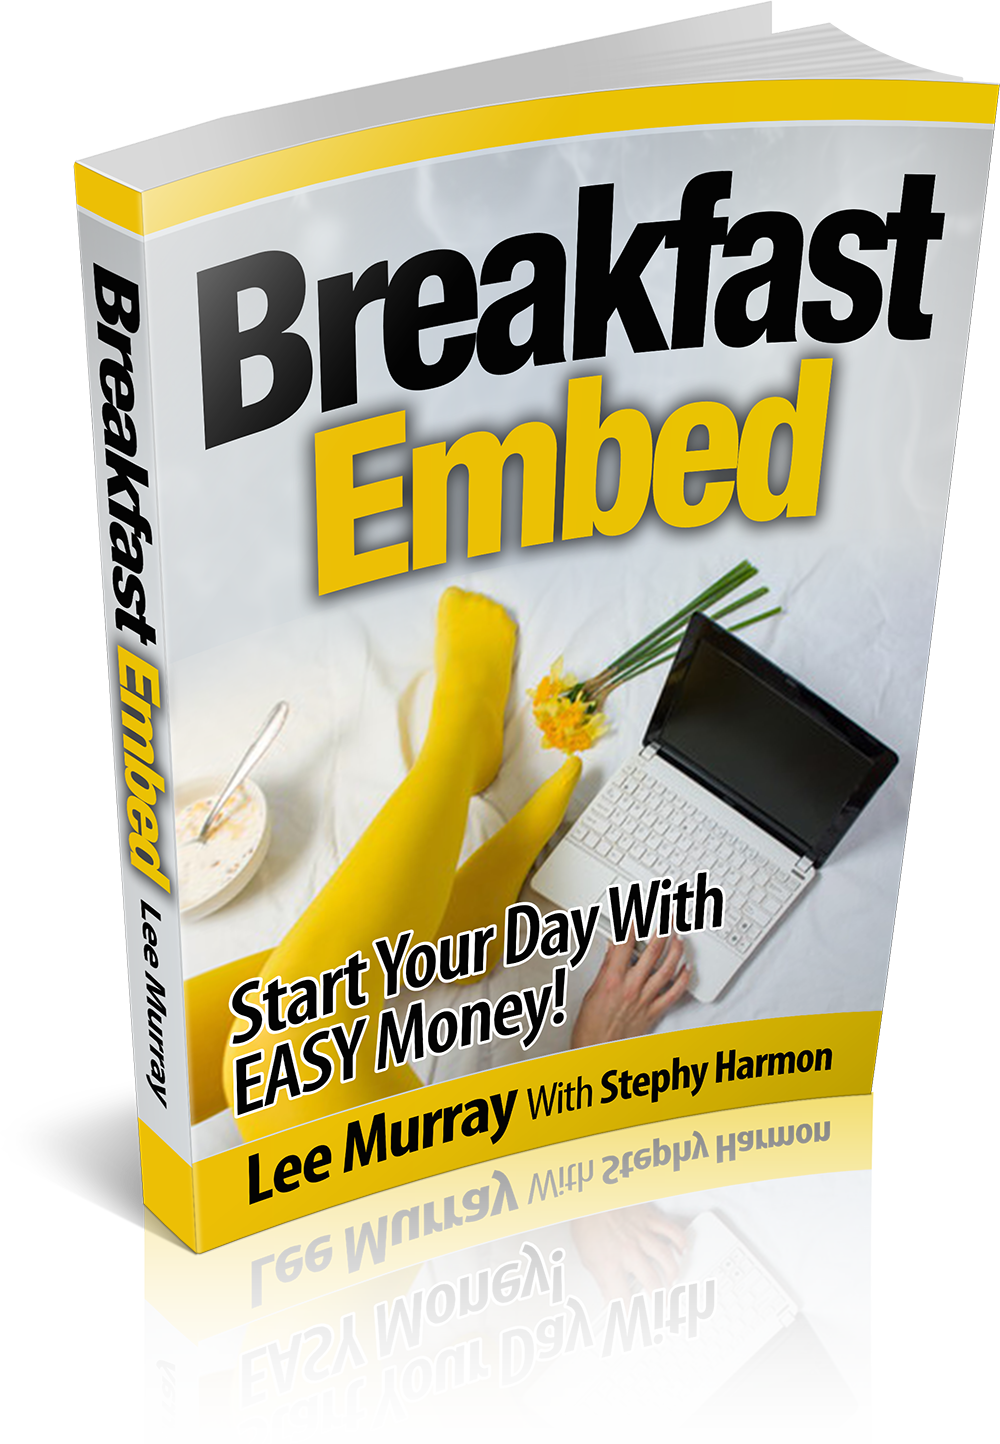 Breakfast Embed review